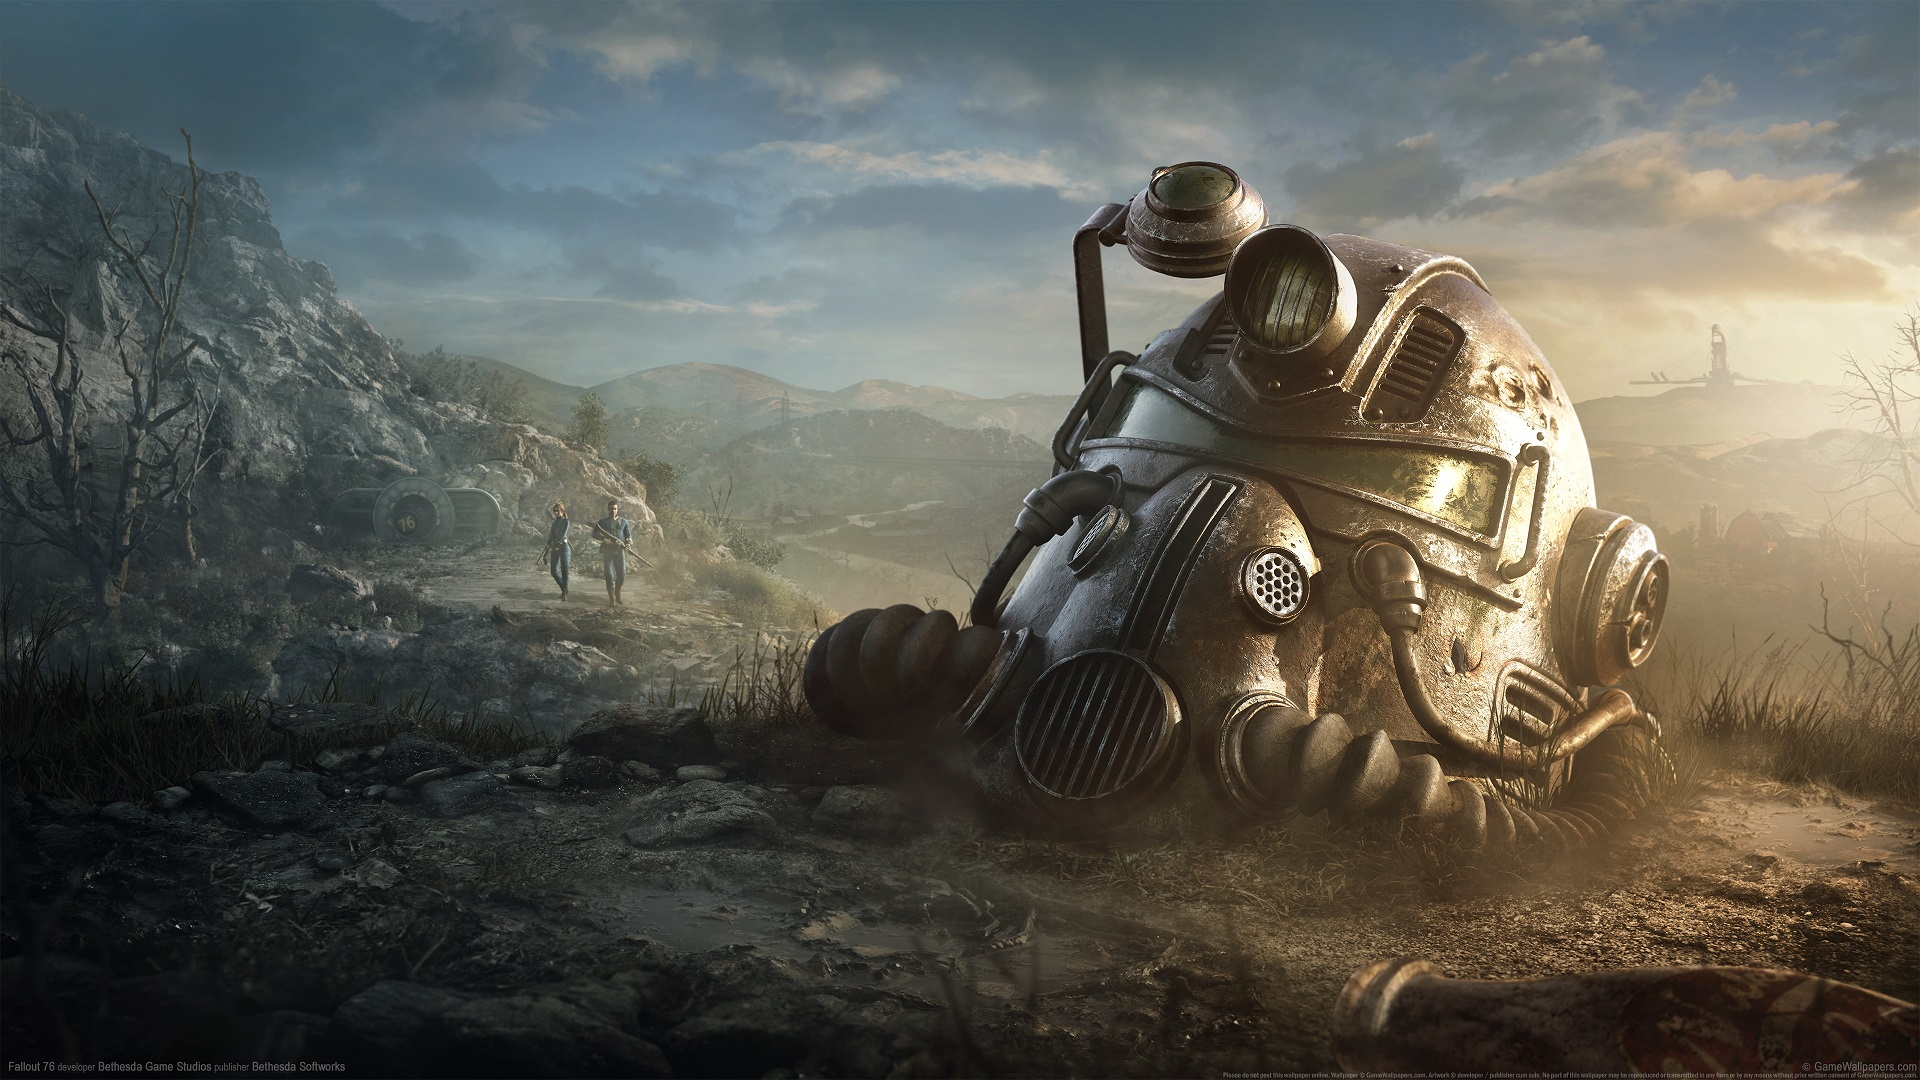 Fallout 76 is getting a free trial, and it starts tomorrow